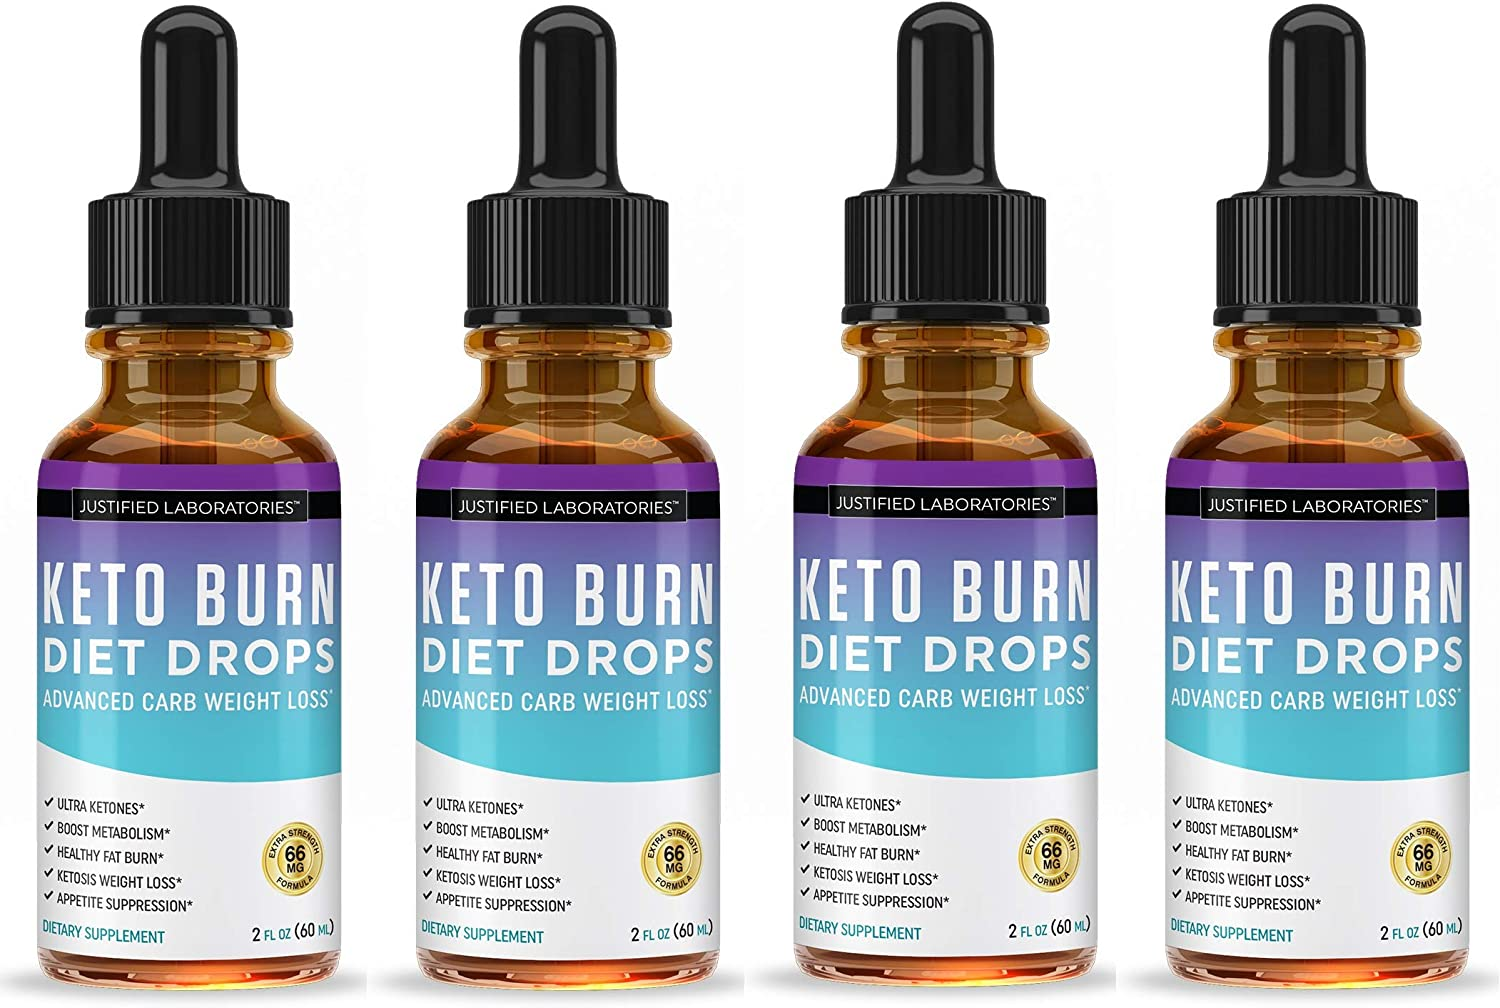 Keto Diet Supplement Drops Shred Burn Ketones for Faster Ketosis Weight Loss Appetite Suppressant Loose Unwanted Belly Fat Raspberry Ketone African Mango Advanced Dietary Blend Made in USA 4 Bottles